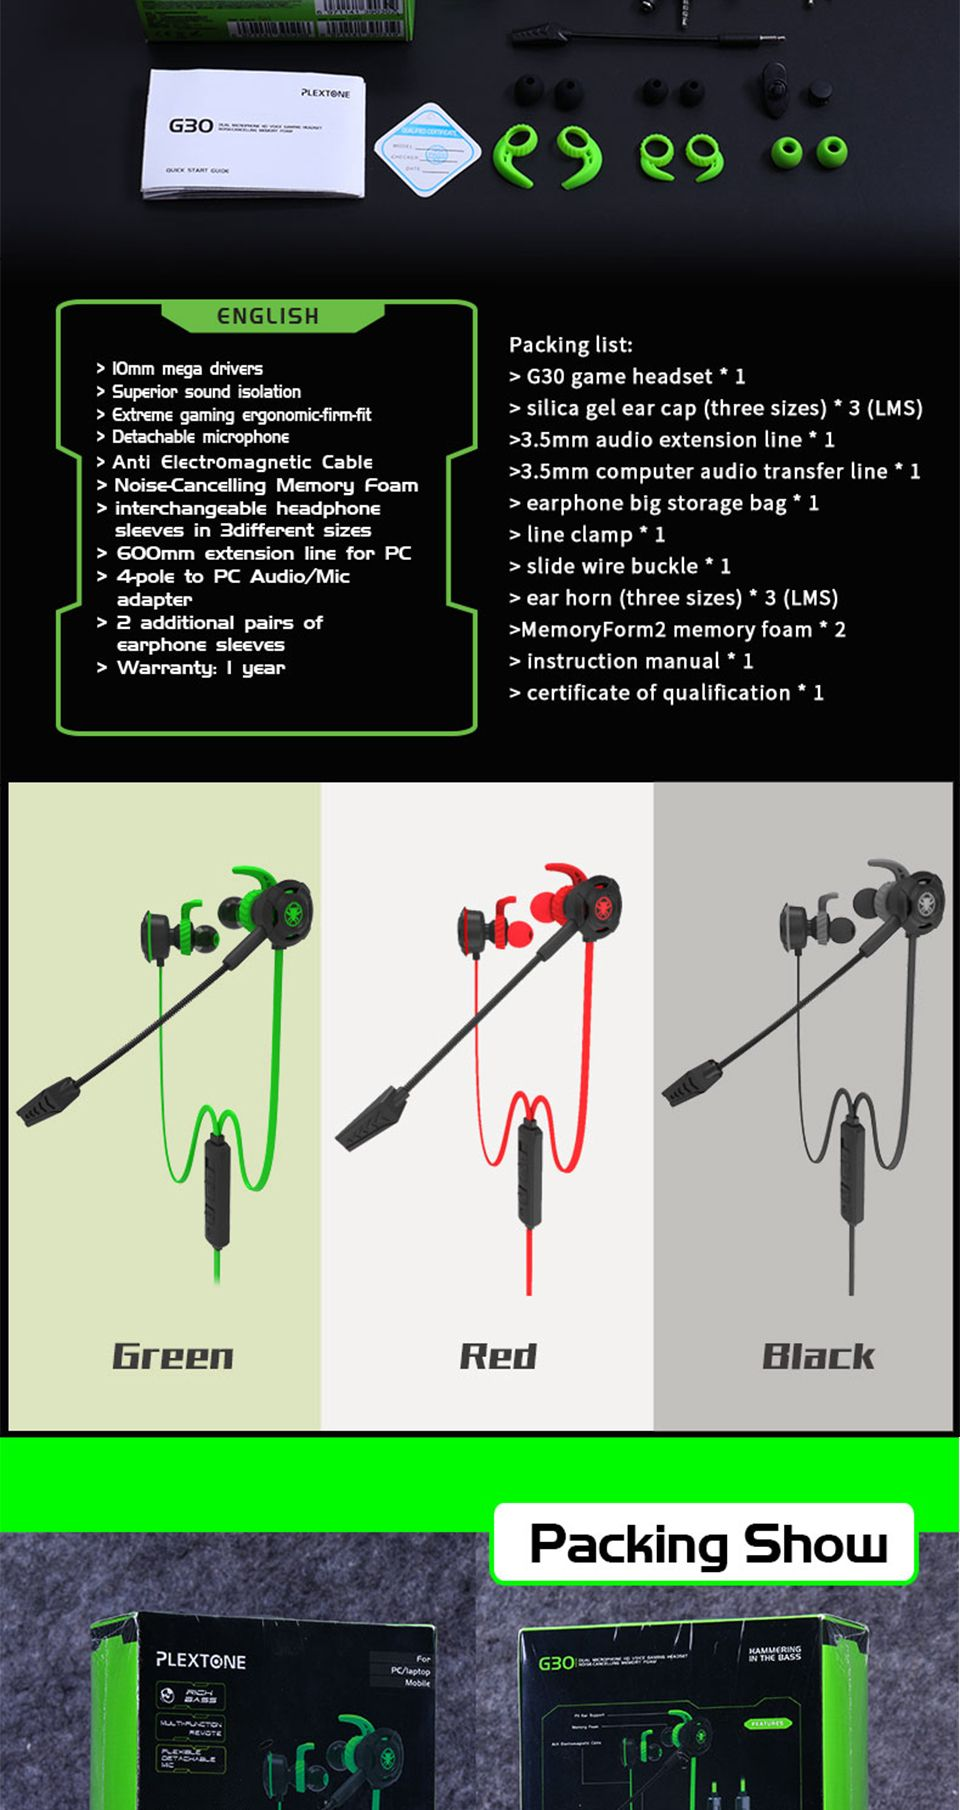 hight resolution of  plextone g30 gaming headset with microphone 14